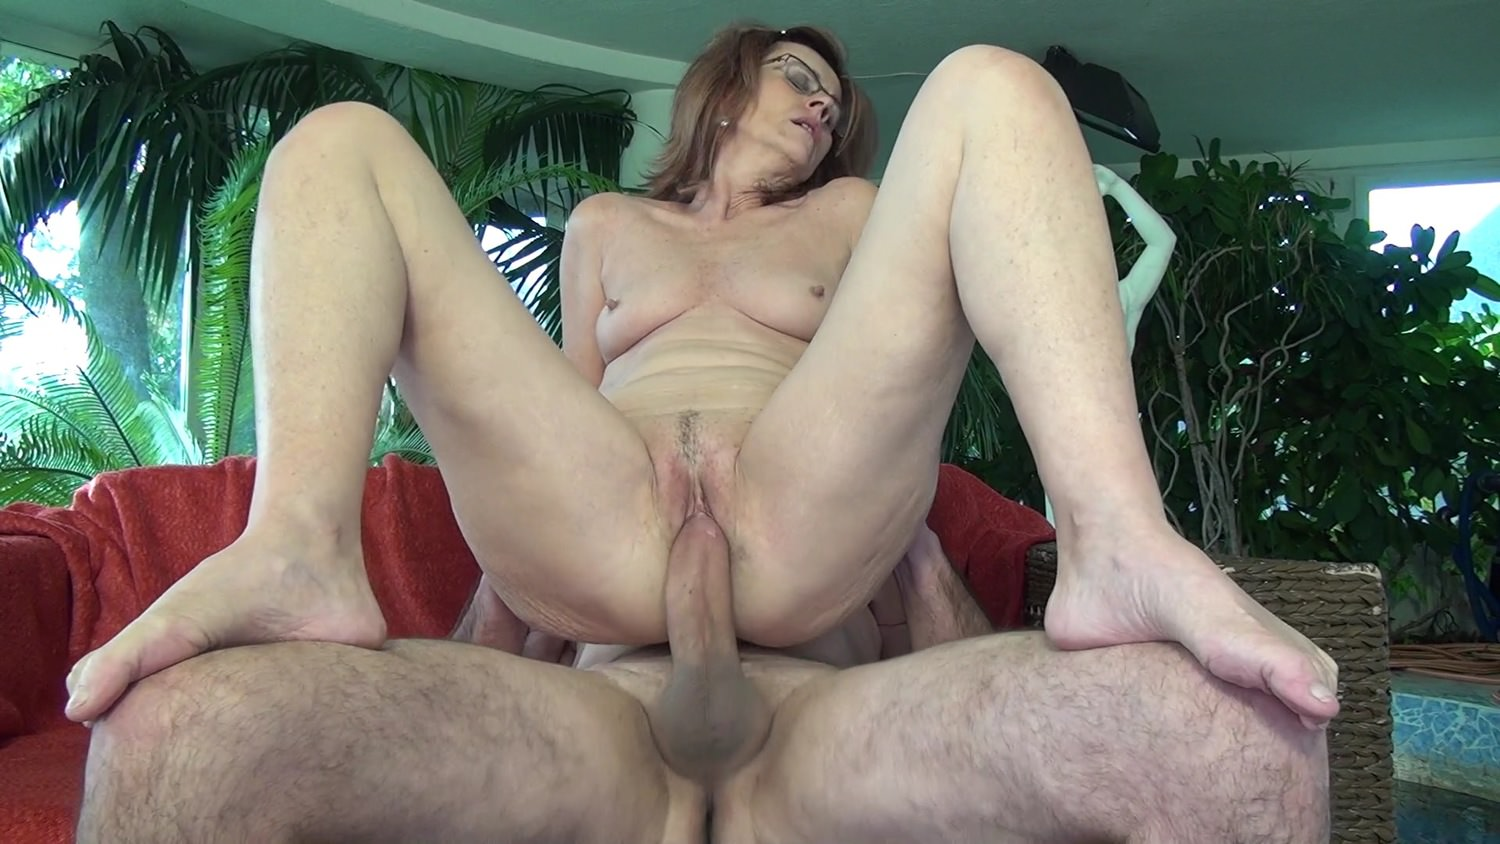 Matures,Milf,European,Tutti Frutti,VR Porn,360,HD Videos,Brand New,New Mature,Euro